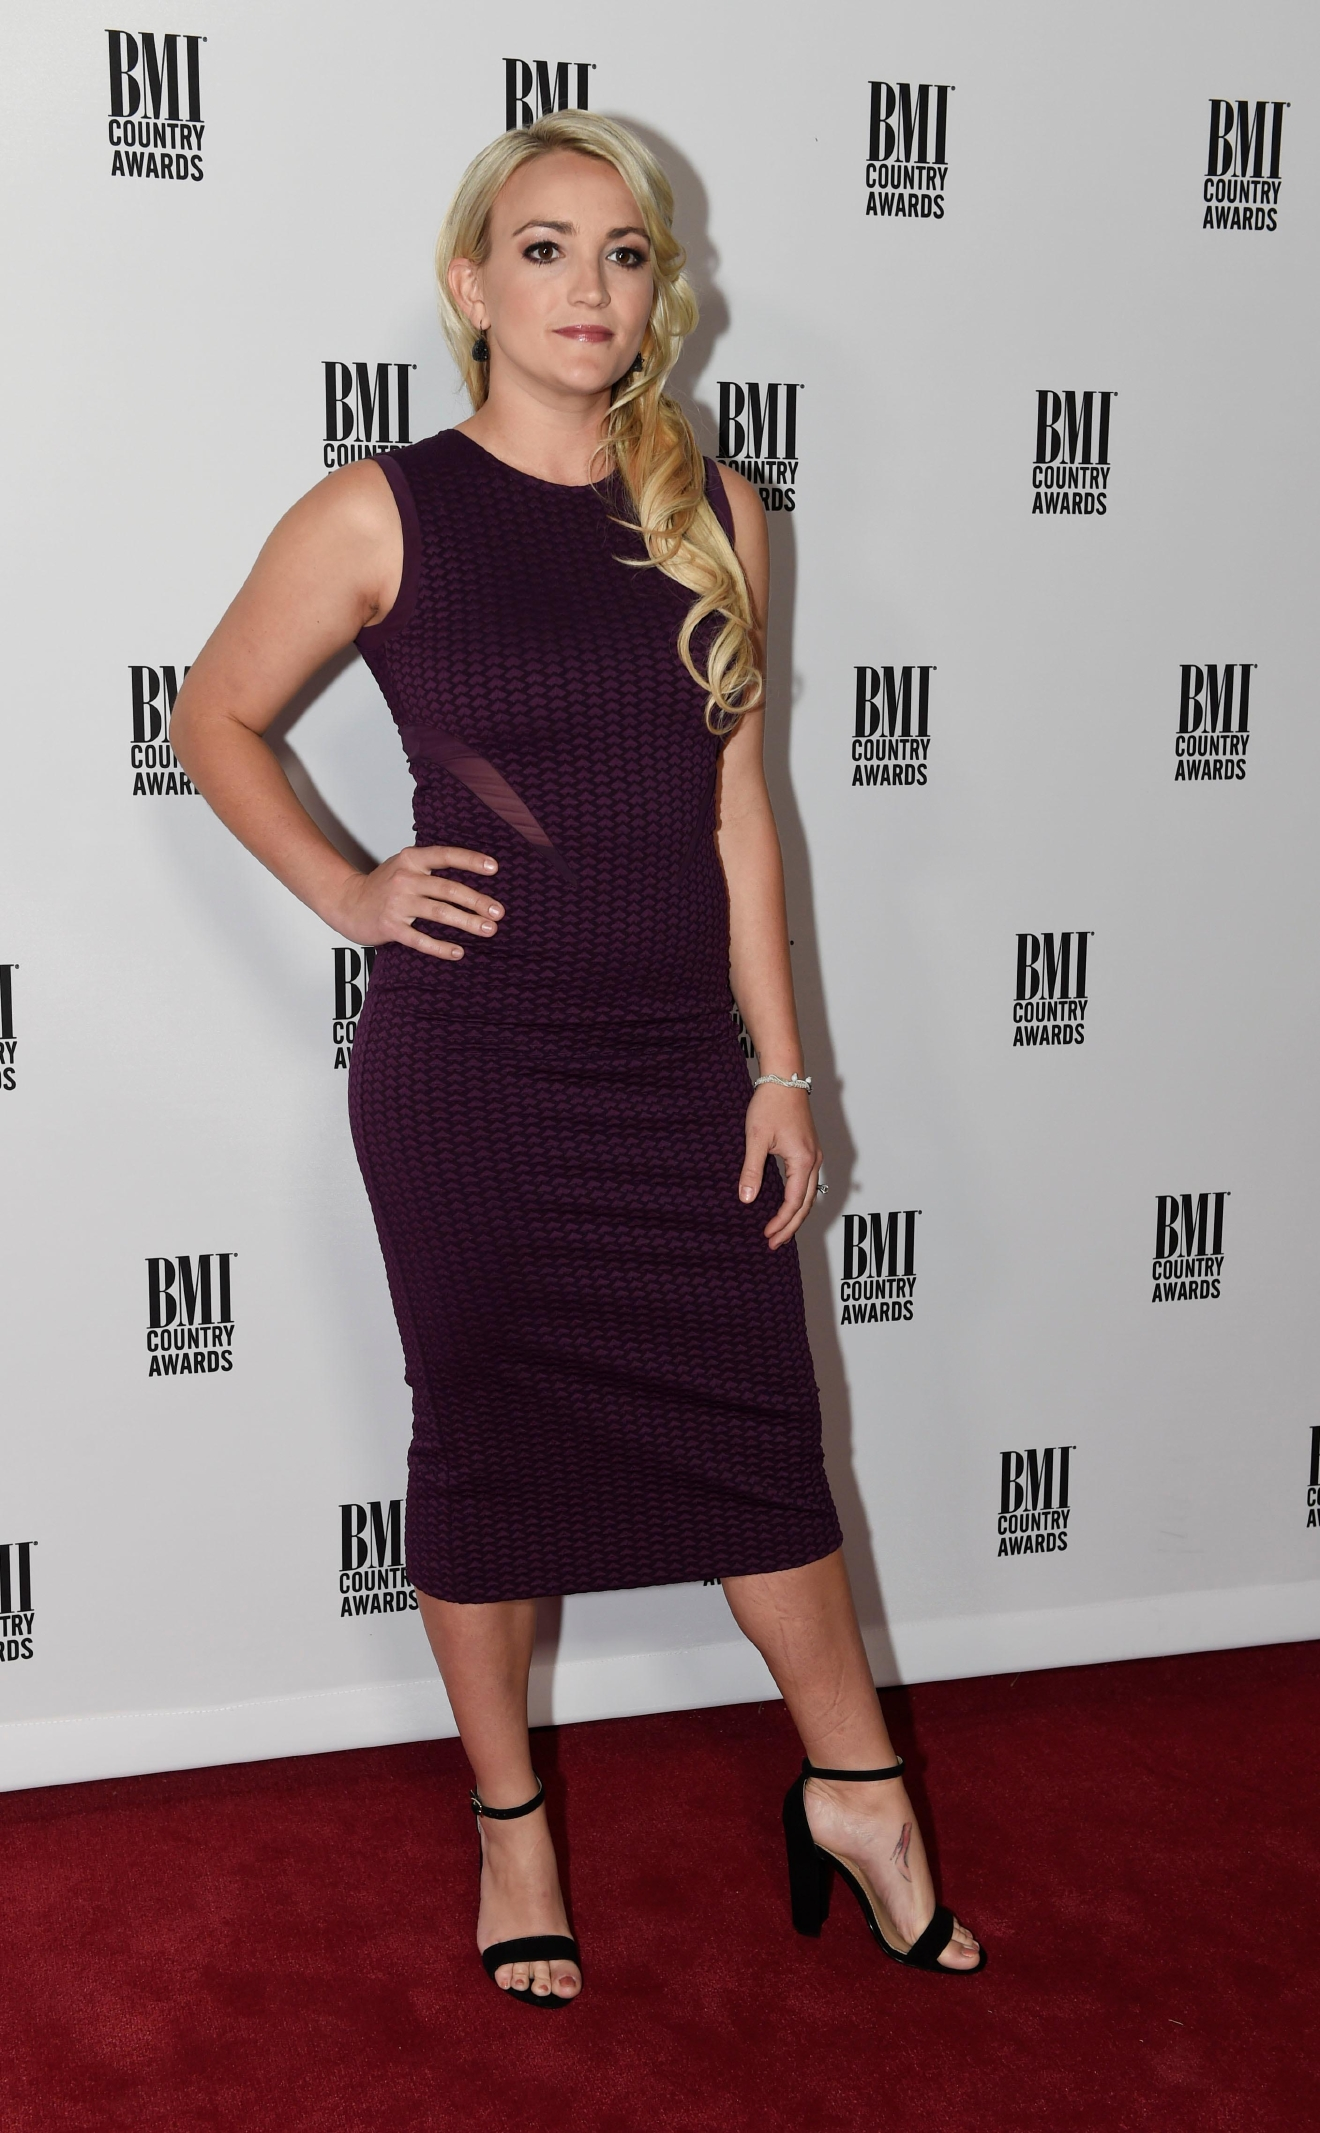 Jamie Lynn Spears seen at 64th Annual BMI Country Awards at BMI on Tuesday, Nov 1, 2016, in Nashville, Tenn. (Photo by Sanford Myers/Invision/AP)